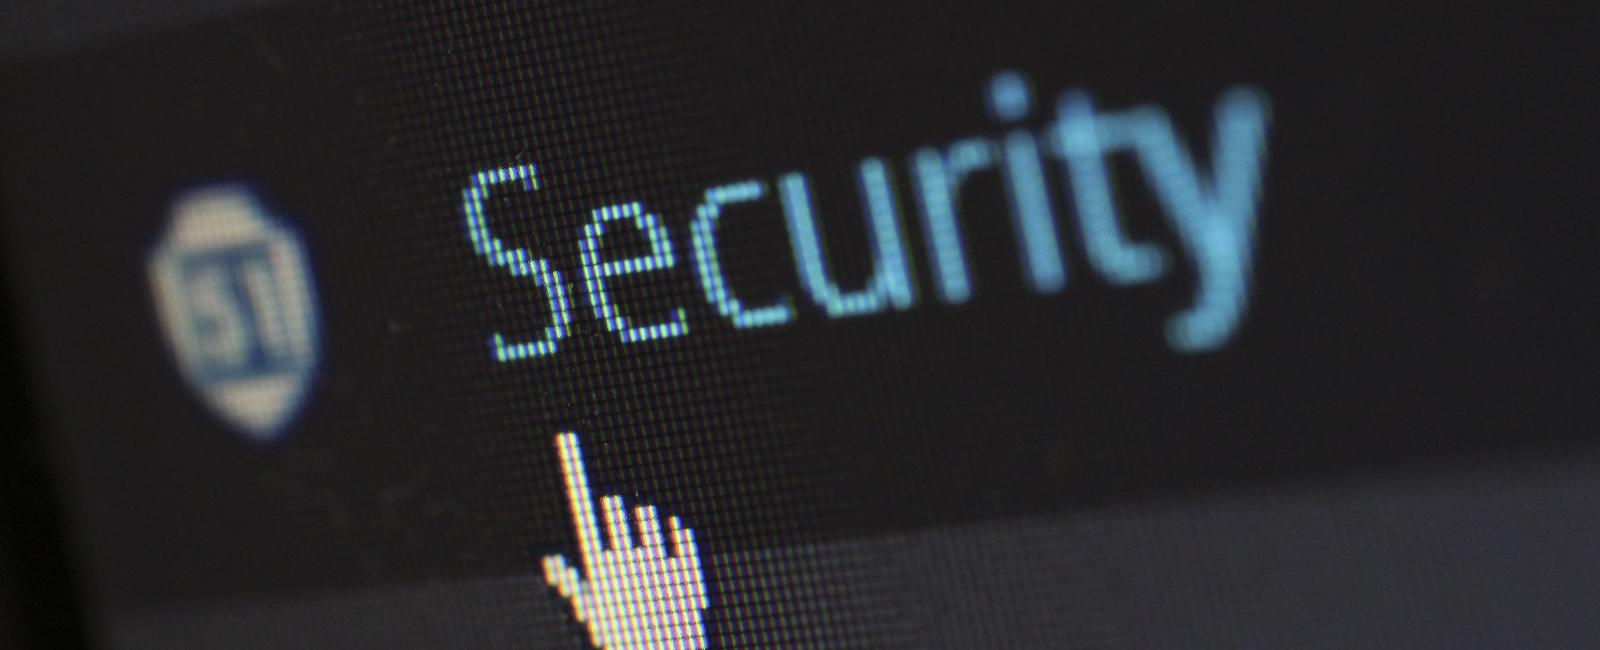 How to Prevent Your Drupal Site from Getting Hacked: Part 2